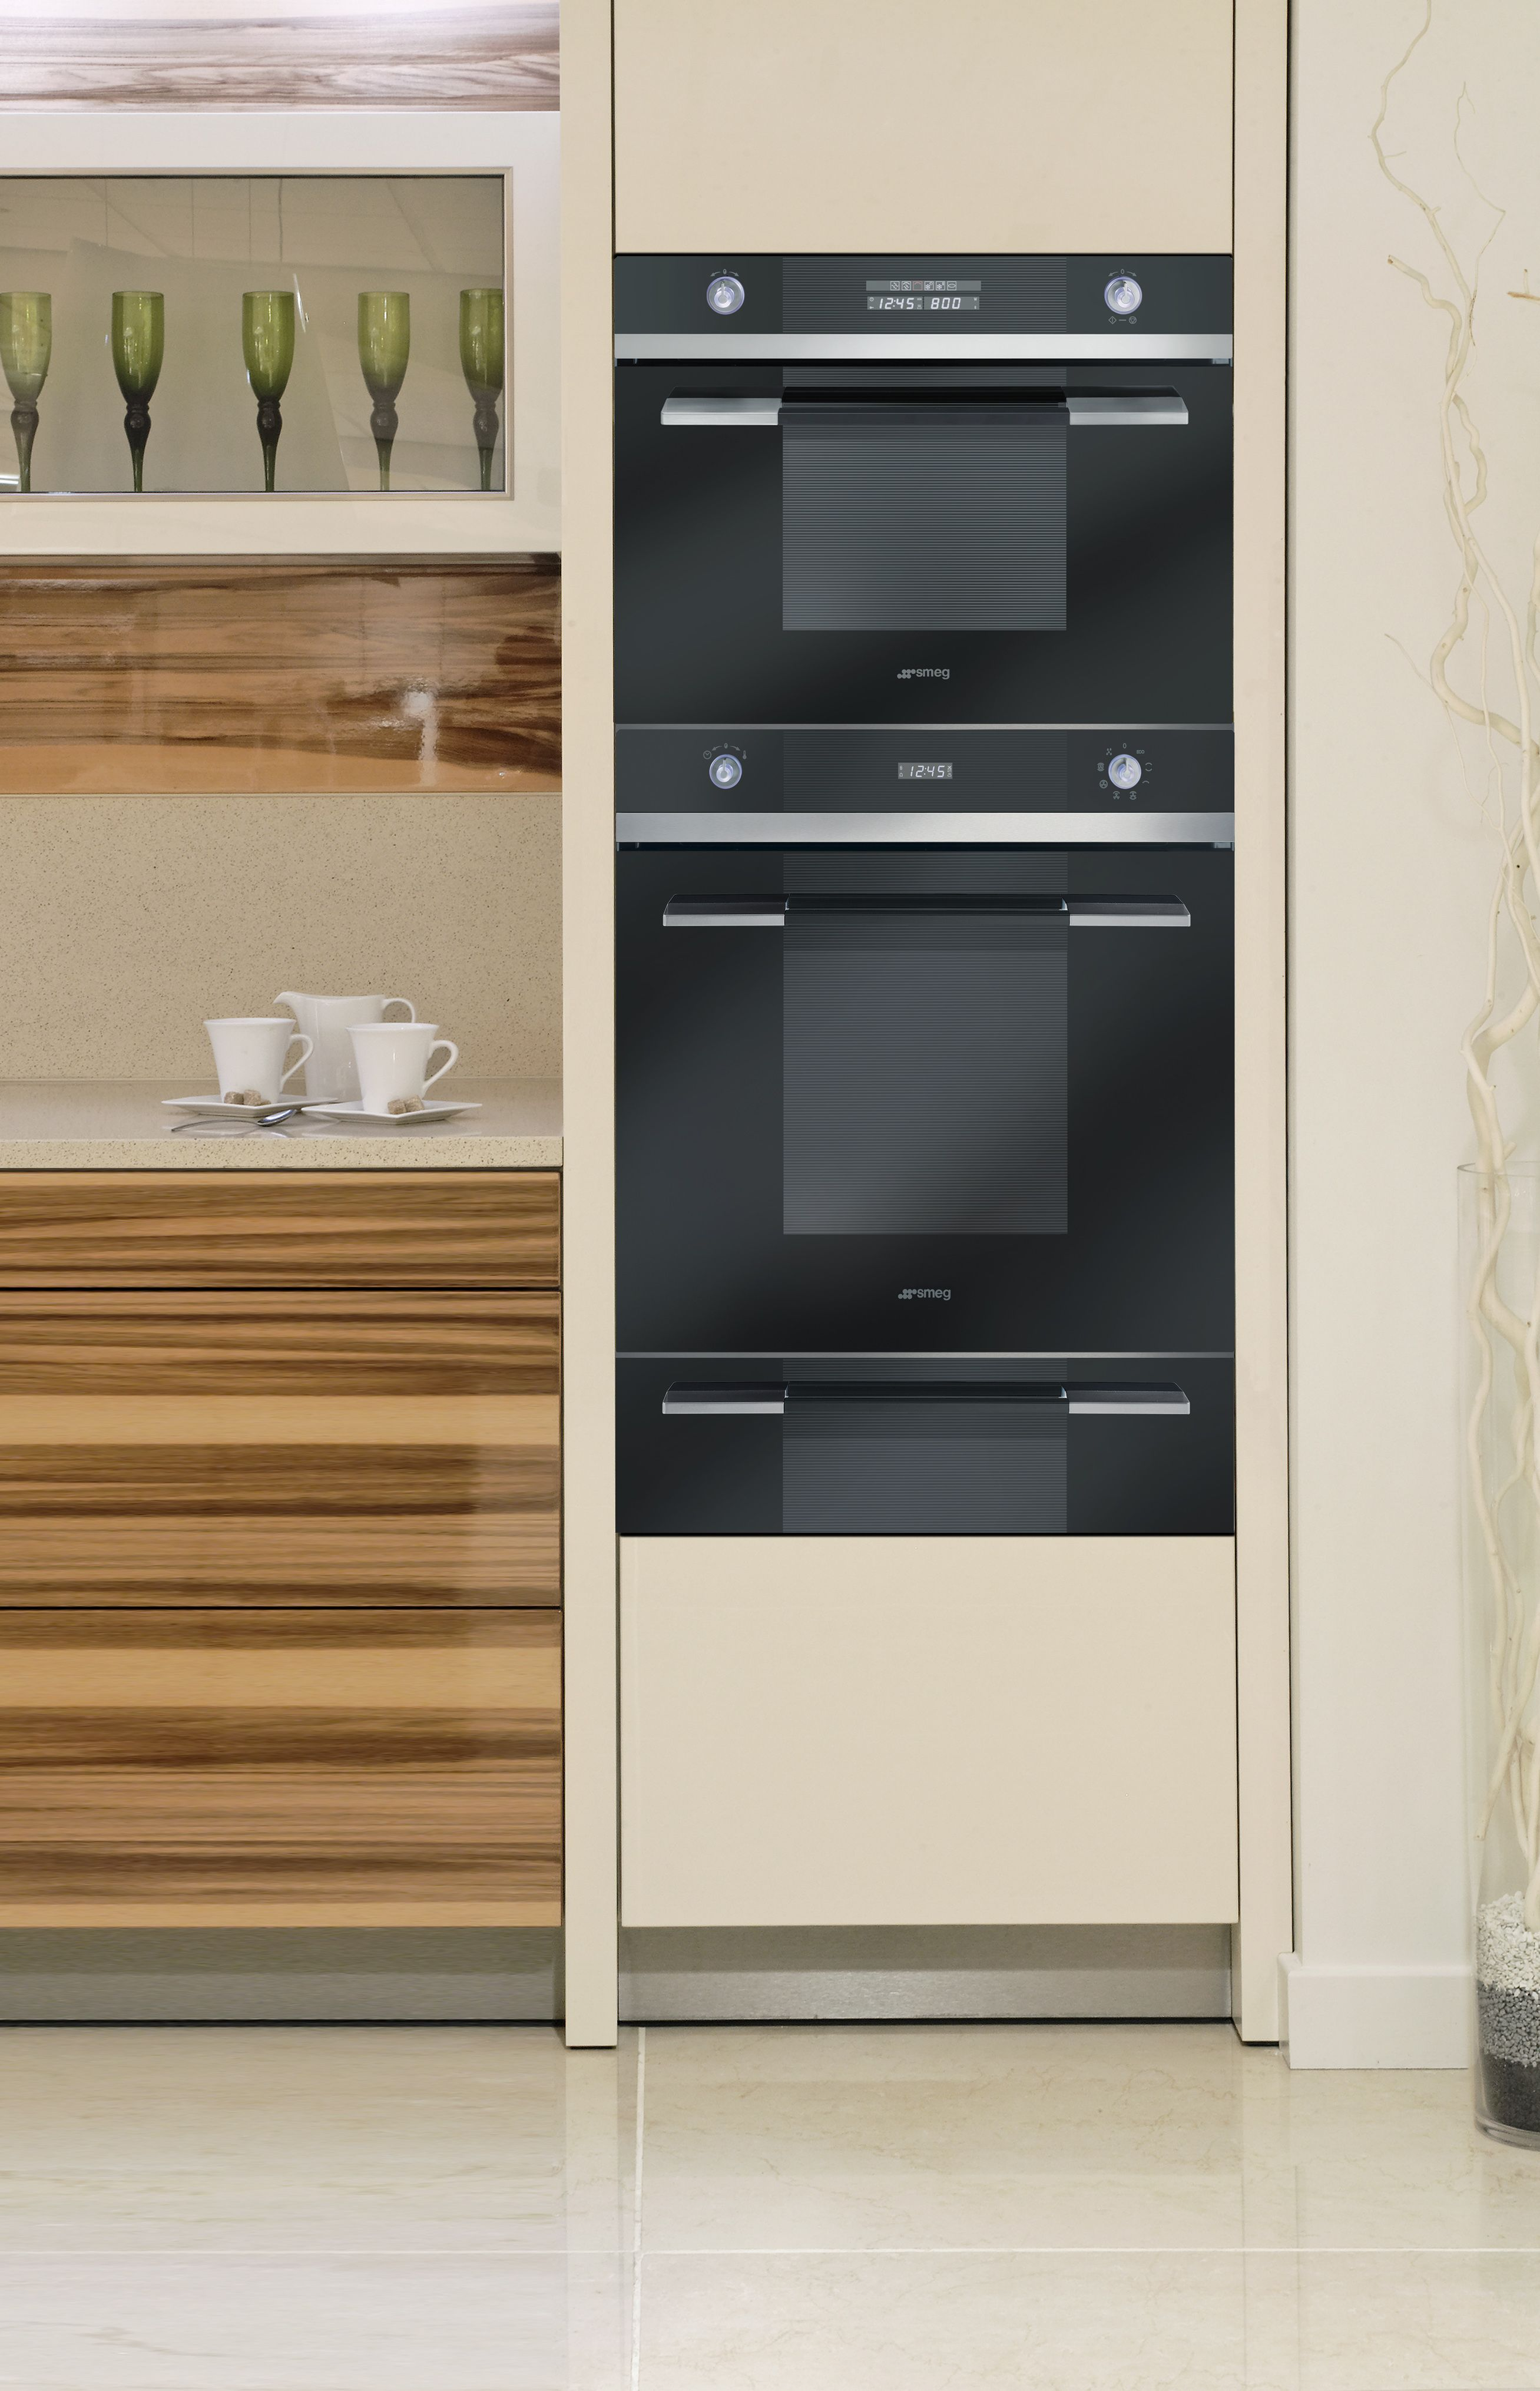 caf ge drawer series appliance warming dispatcher wall ovenwarming appliances cafe company home drawers